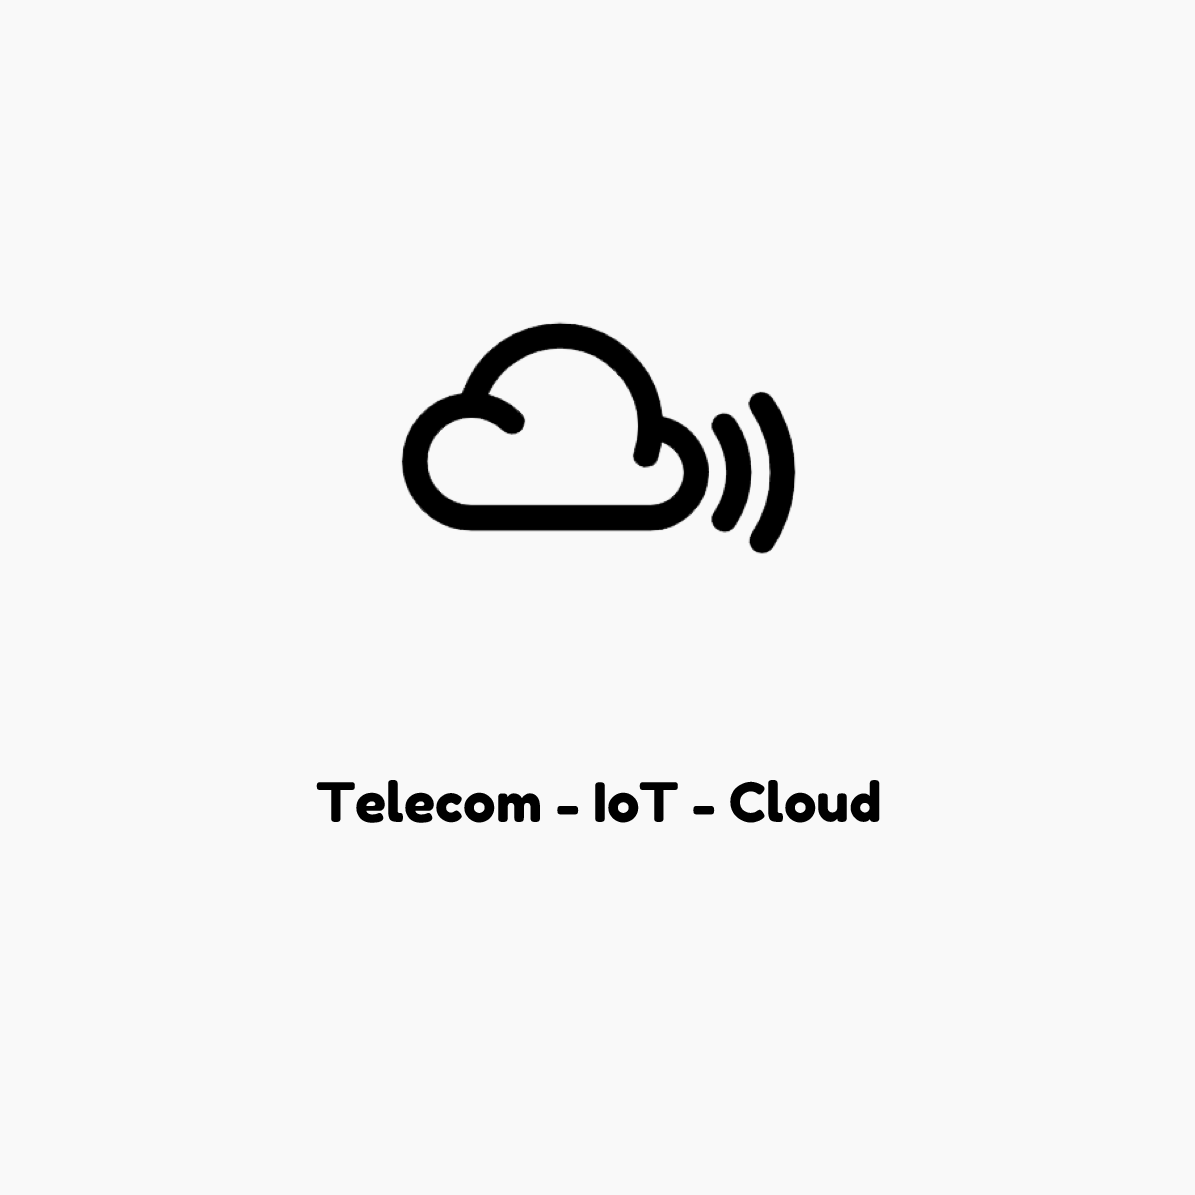 Telecom-IoT-Cloud